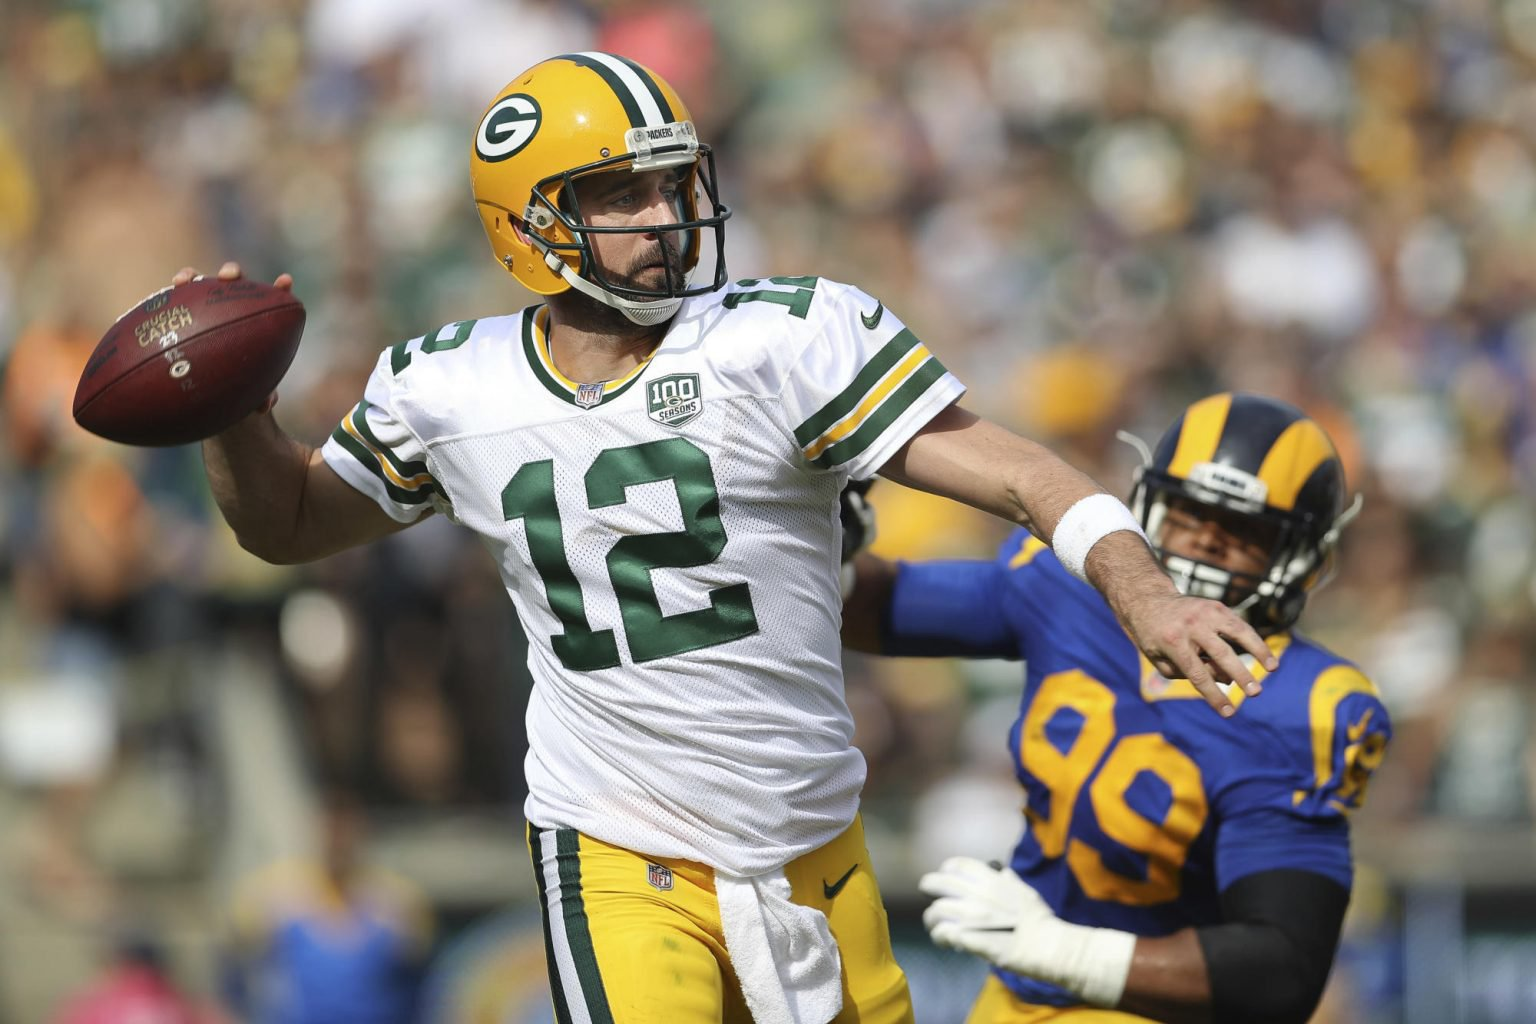 The Aaron Rodgers update and the effect on NFL futures